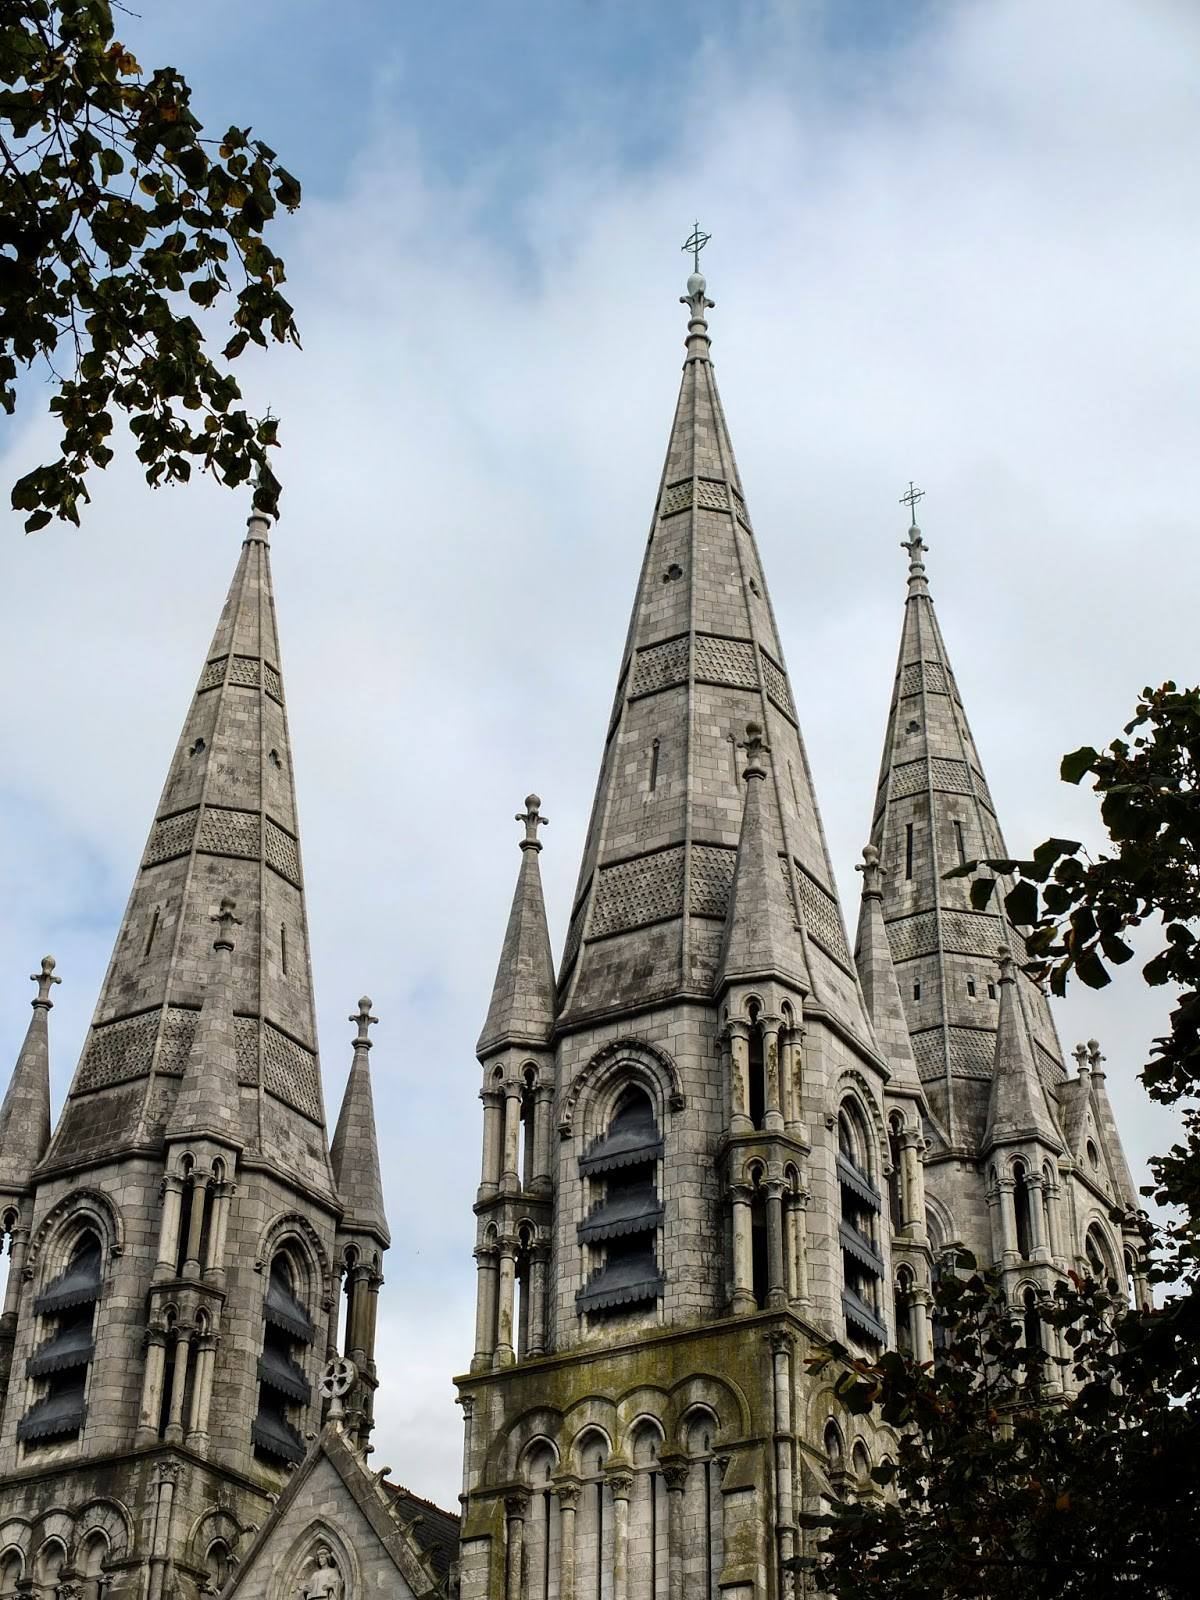 Towers of the Saint Fin Barre's Cathedral, Cork City.